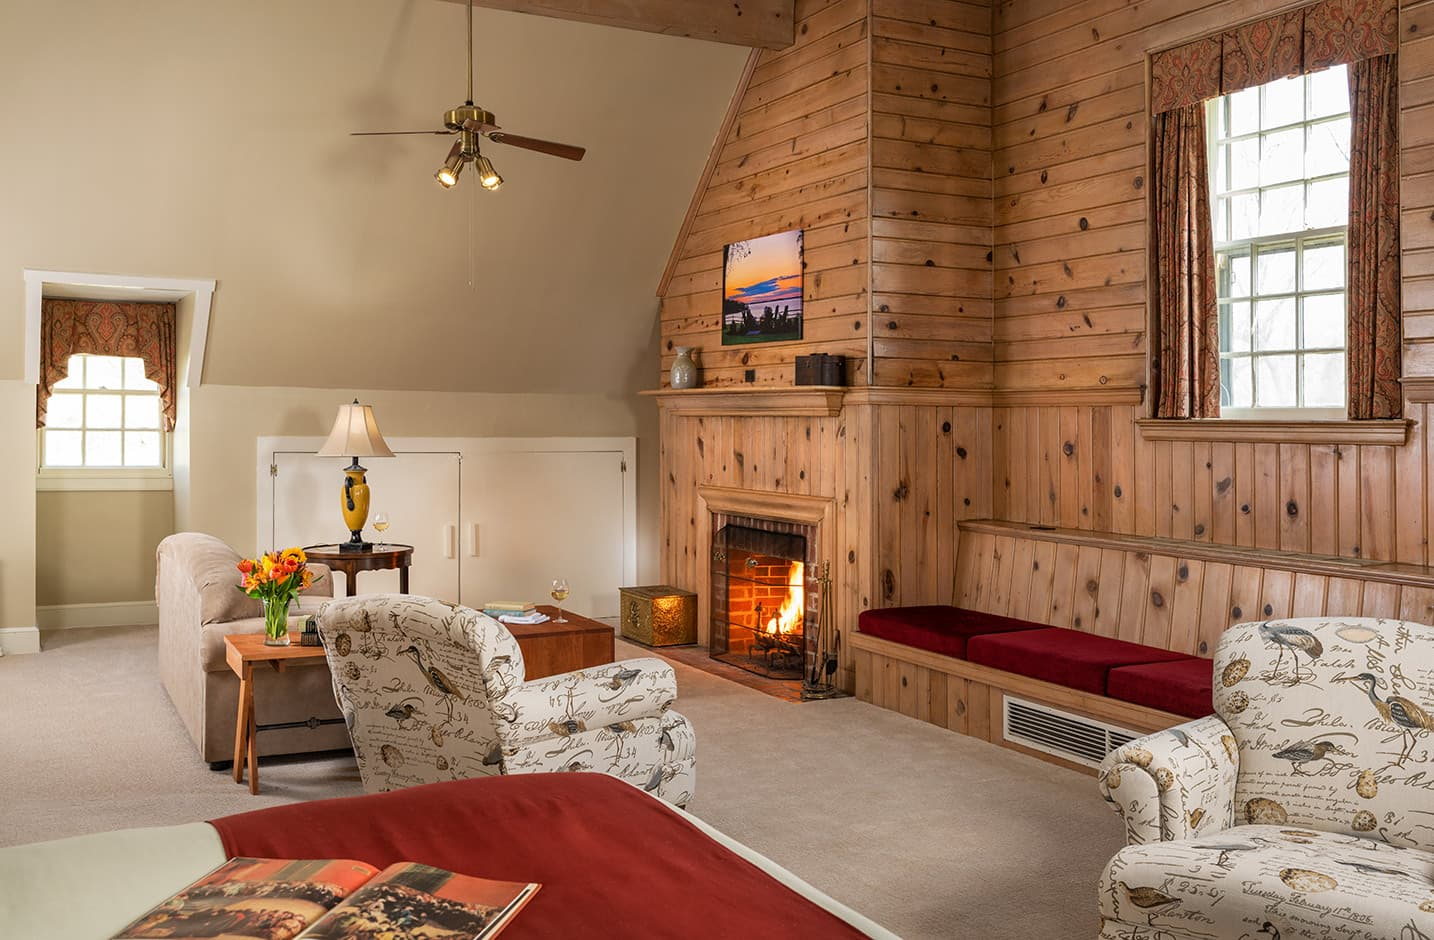 Russell Suite offers incredible getaways from DC